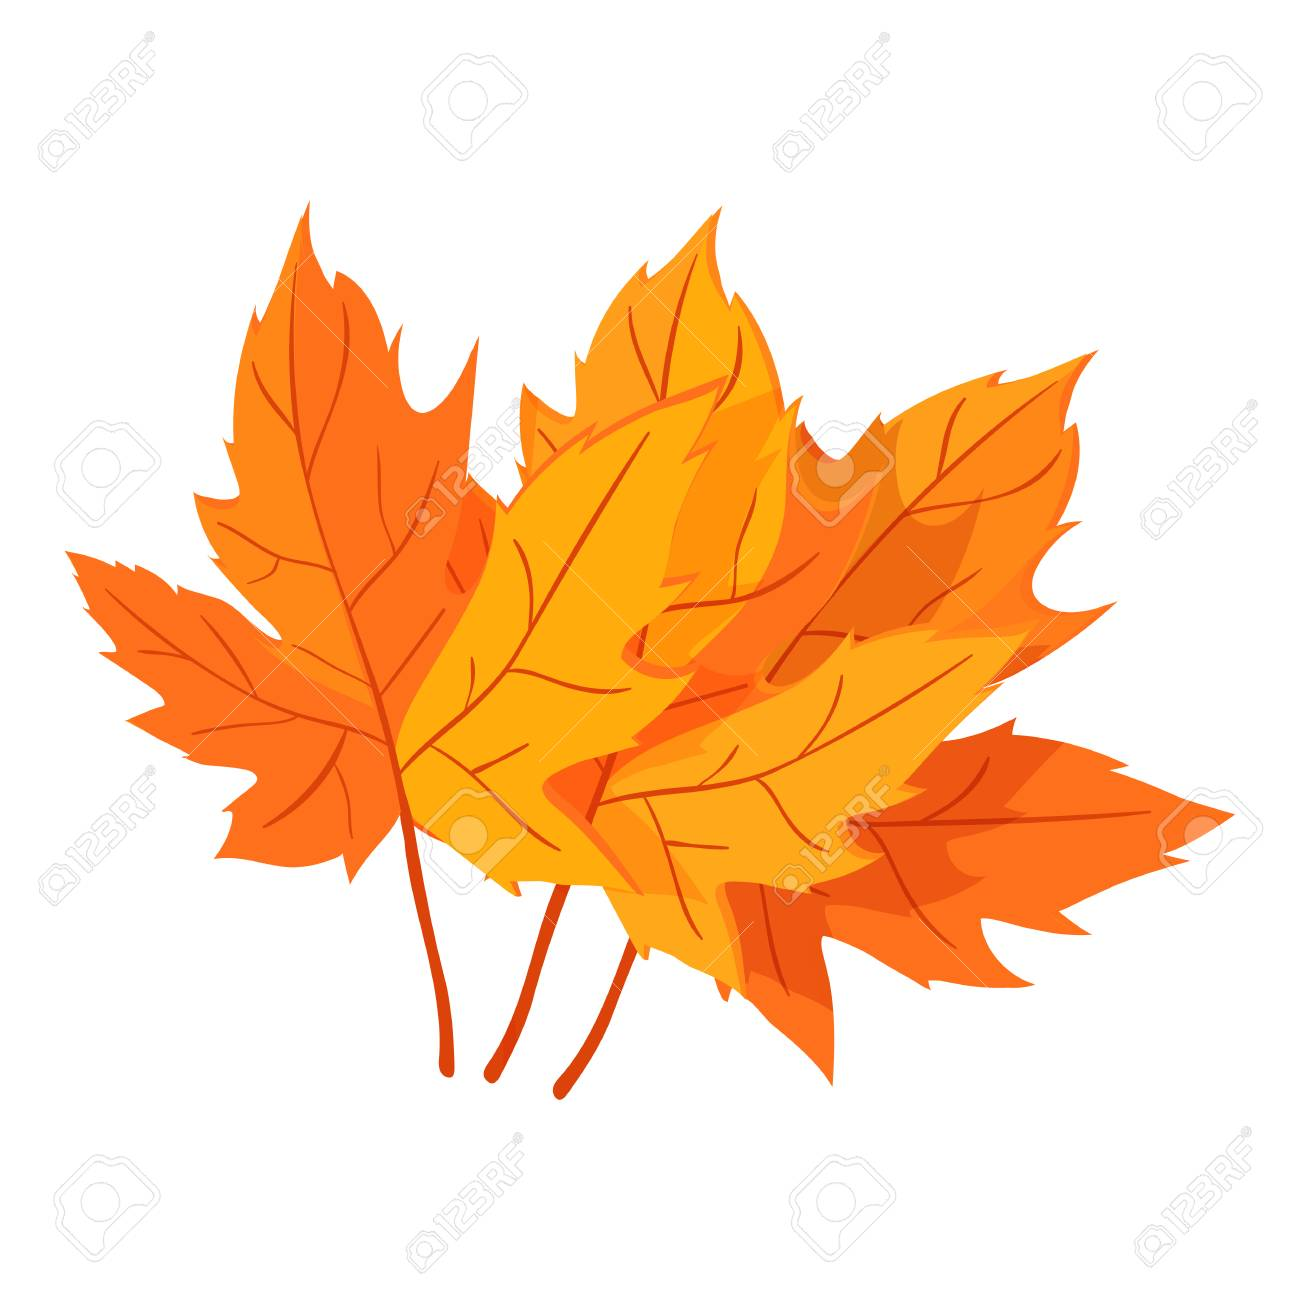 Autumn Leaves Icon Cartoon Style Stock Photo Picture And Royalty Free Image Image 106501331